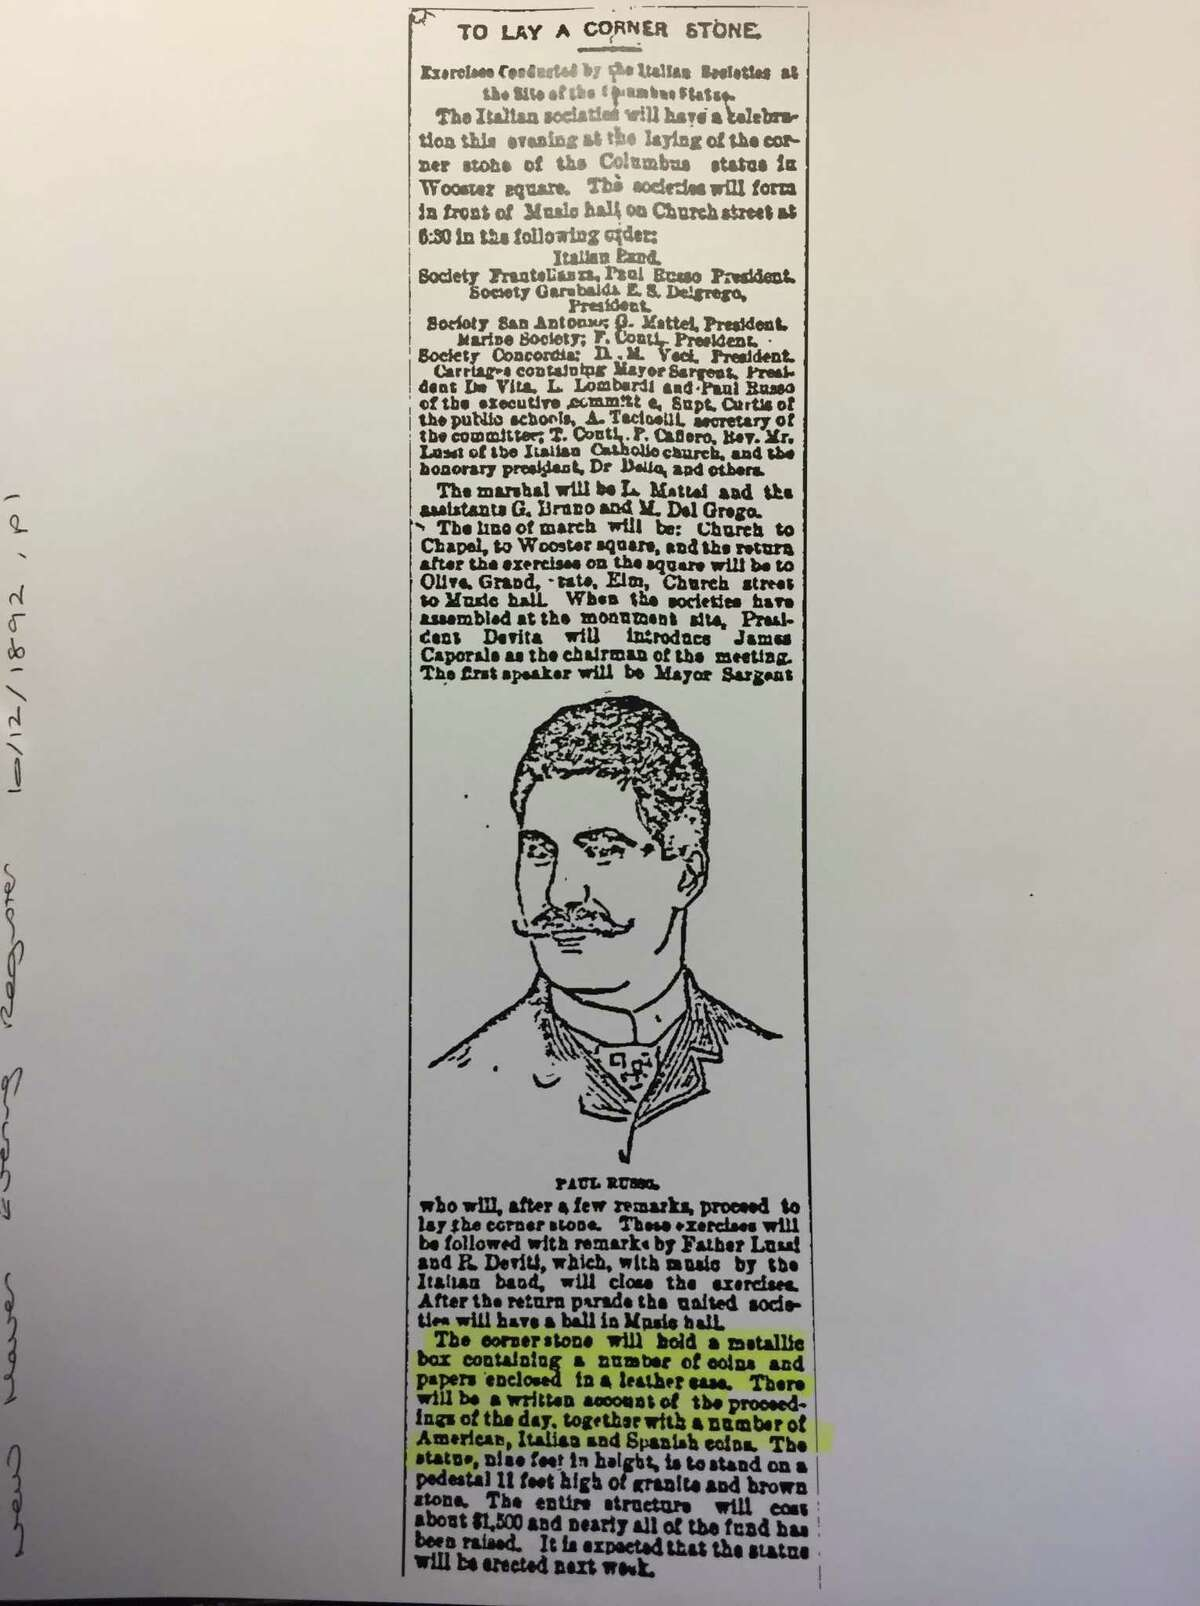 A Page 1 story in the New Haven Evening Register from Oct. 12, 1892, described the Christopher Columbus statue and the time capsule to be placed in its cornerstone.